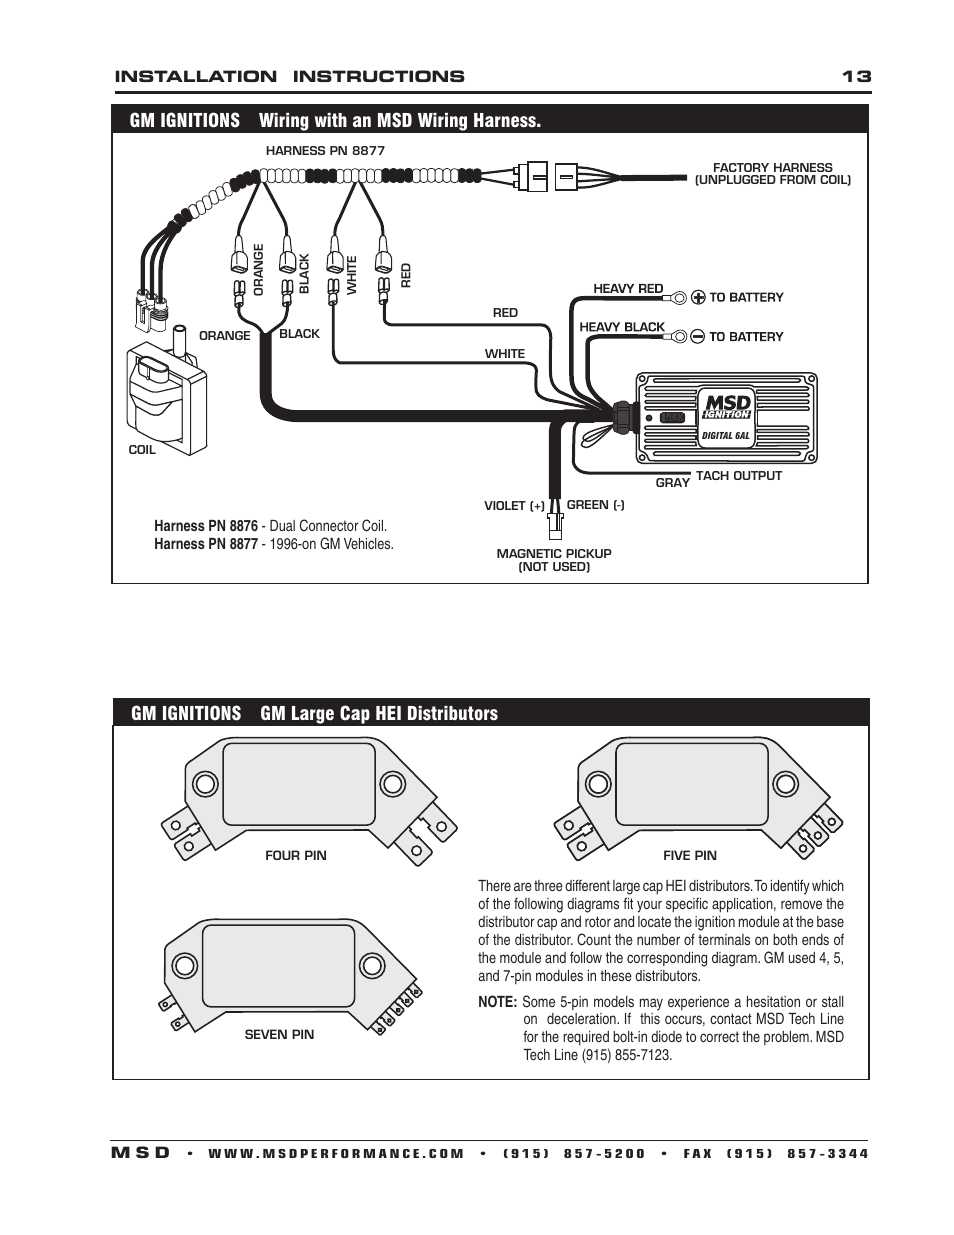 msd 6201 digital 6a ignition control page13?resize\\\\\\\\\\\\\\\\\\\\\\\\\\\\\\\=665%2C861 mesmerizing msd ignition wiring schematic images wiring msd 8460 wiring diagram at soozxer.org